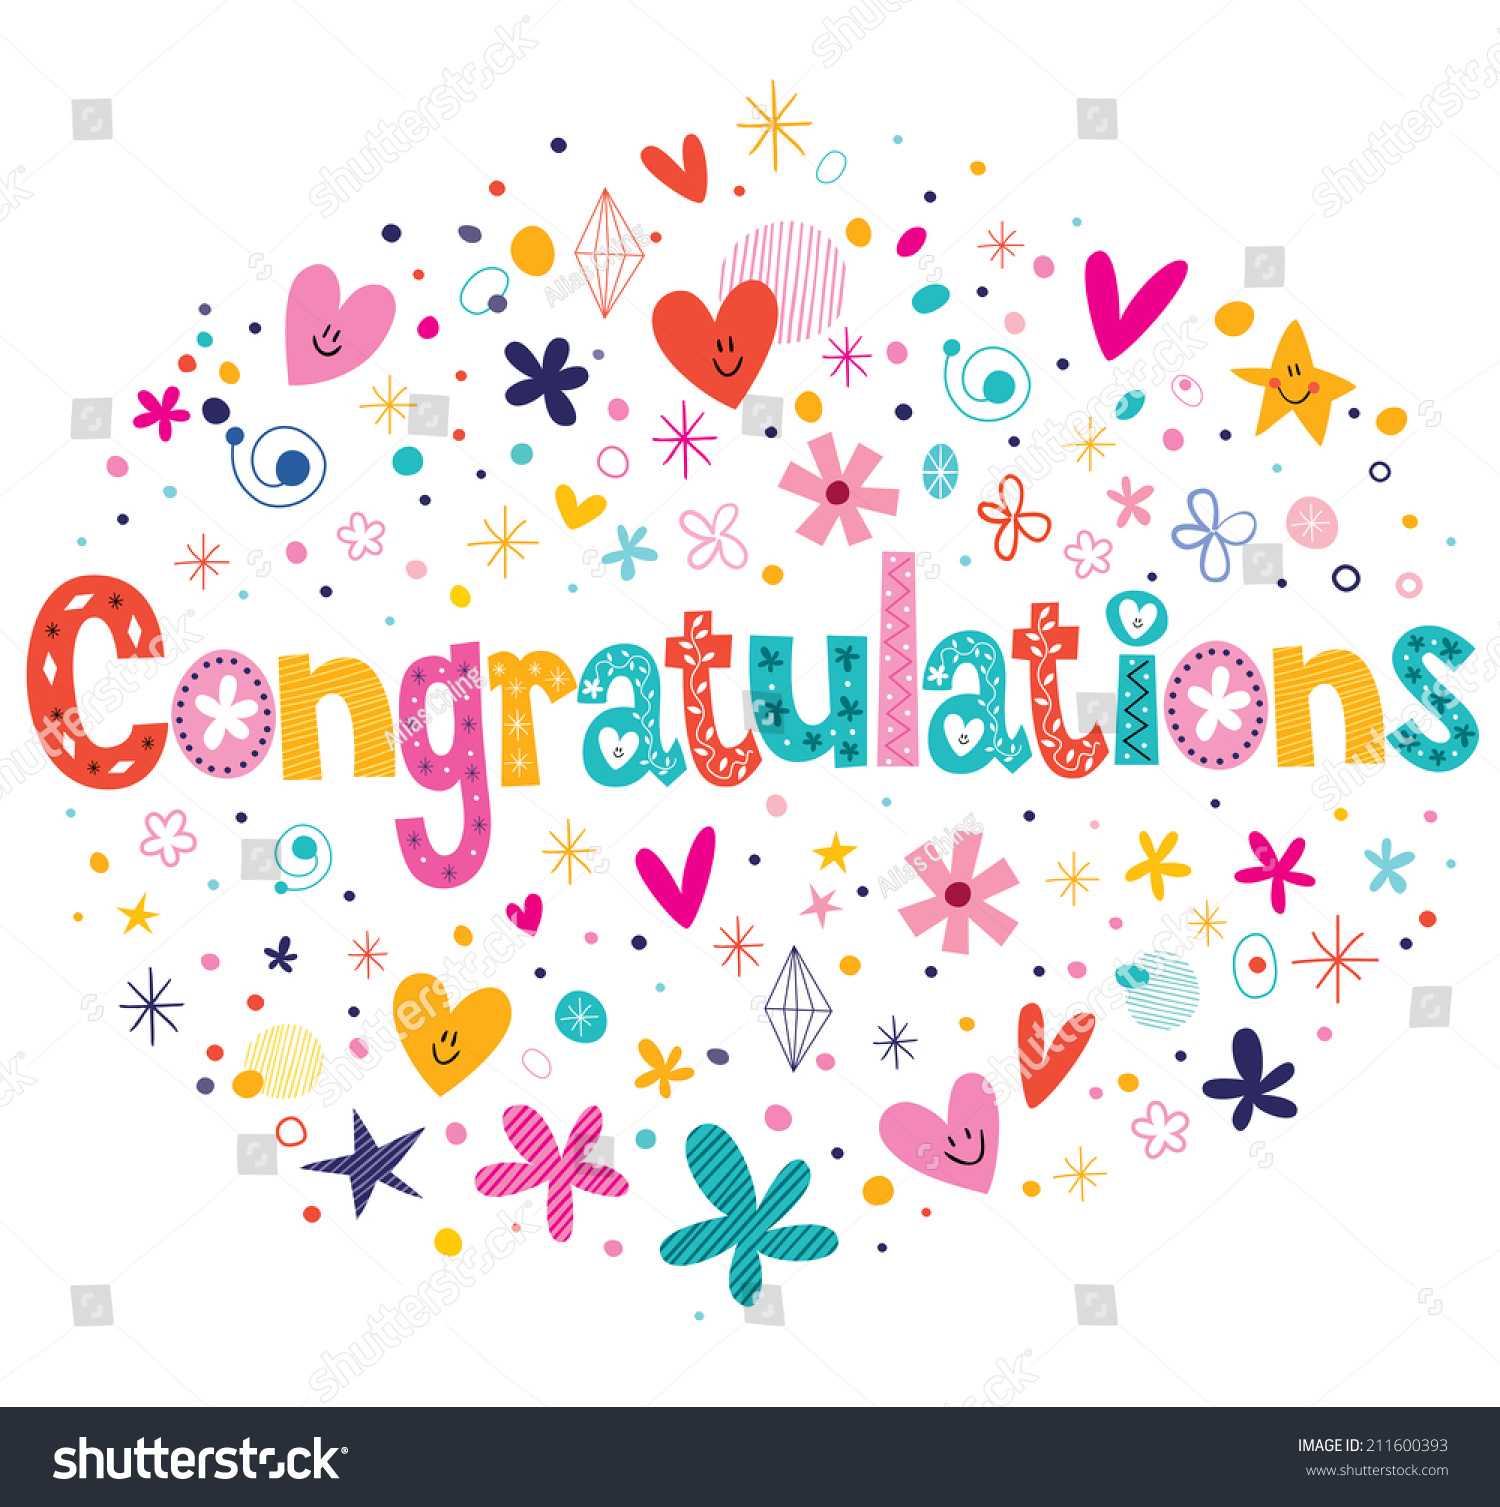 Congratulations Typography Lettering Decorative Text Card Design Stock Vector Illustration 211600393 : Shutterstock